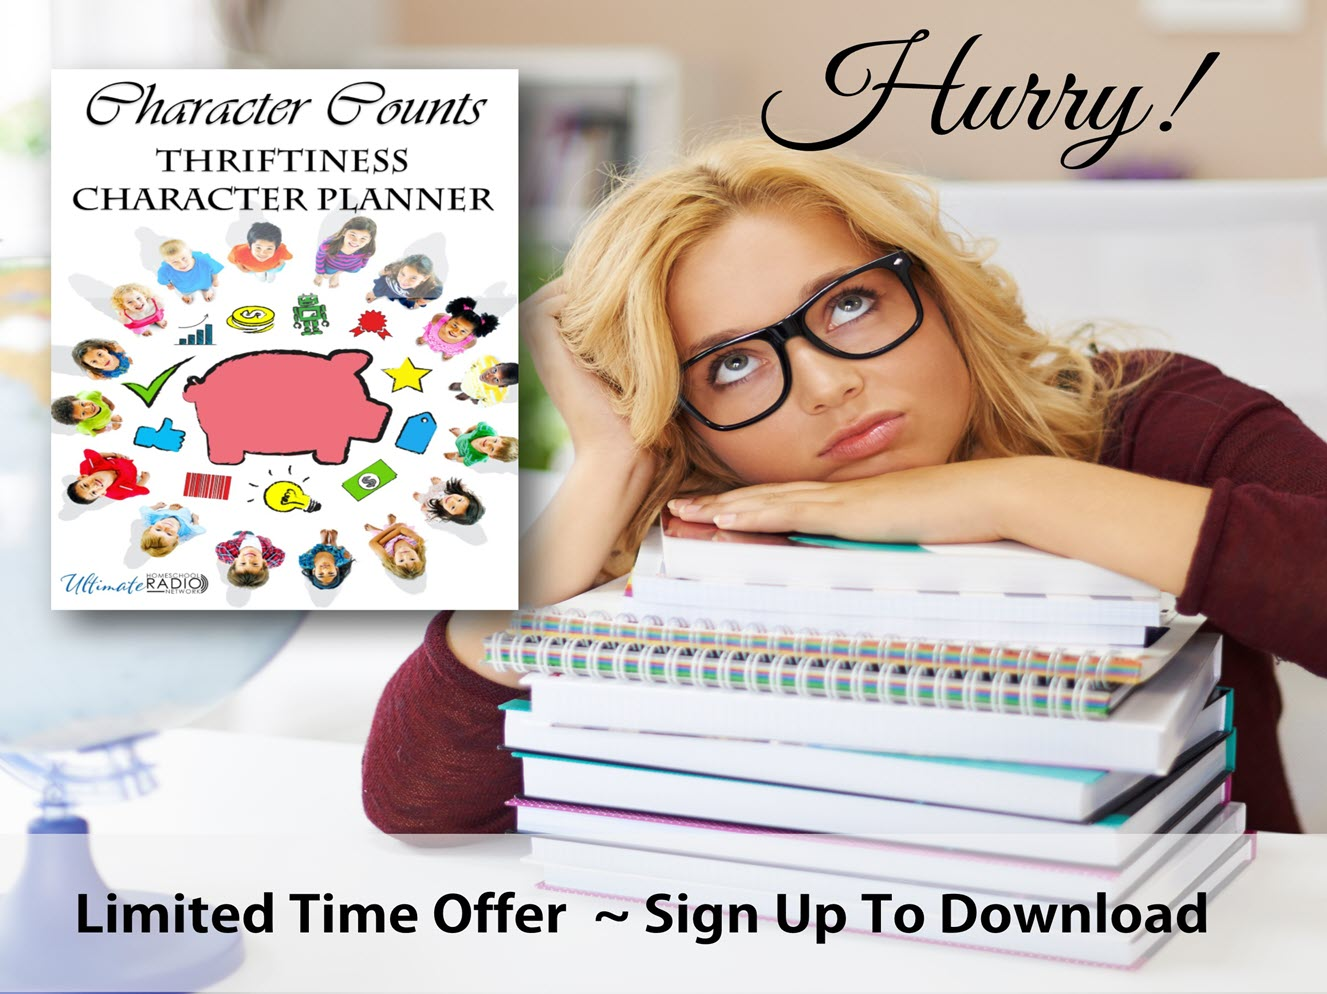 Character Trait of Thriftiness | Free Planner | #freeplanner #charactertraits #thriftiness #kidsplanner #kidscharacter